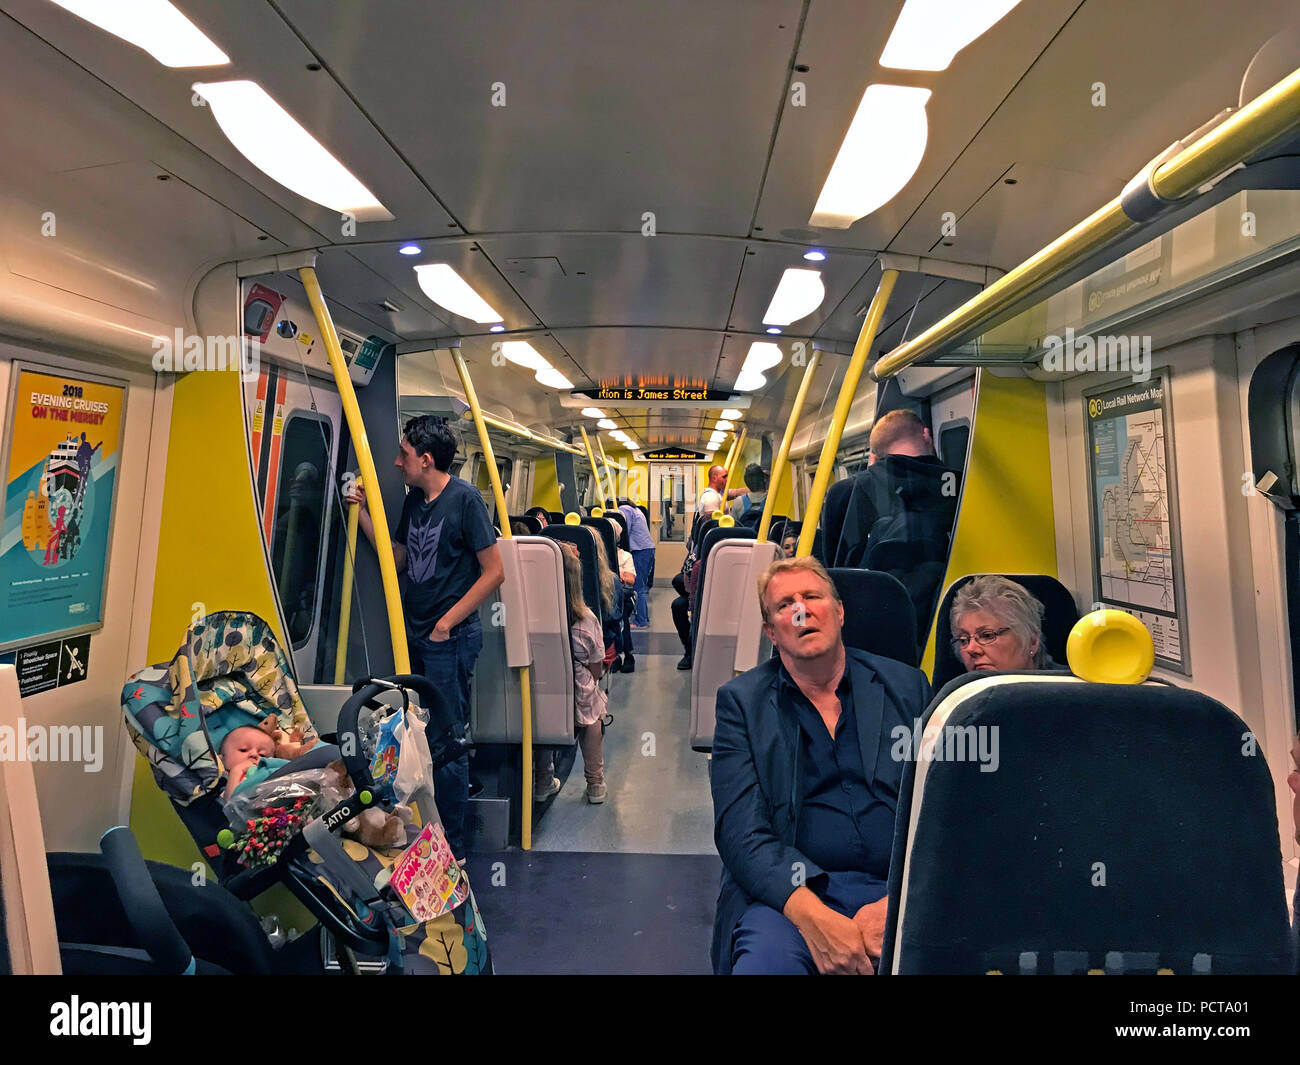 Interior of a Merseyrail Wirral Line Train, Liverpool City Region, Merseyside, North West England, UK - Stock Image